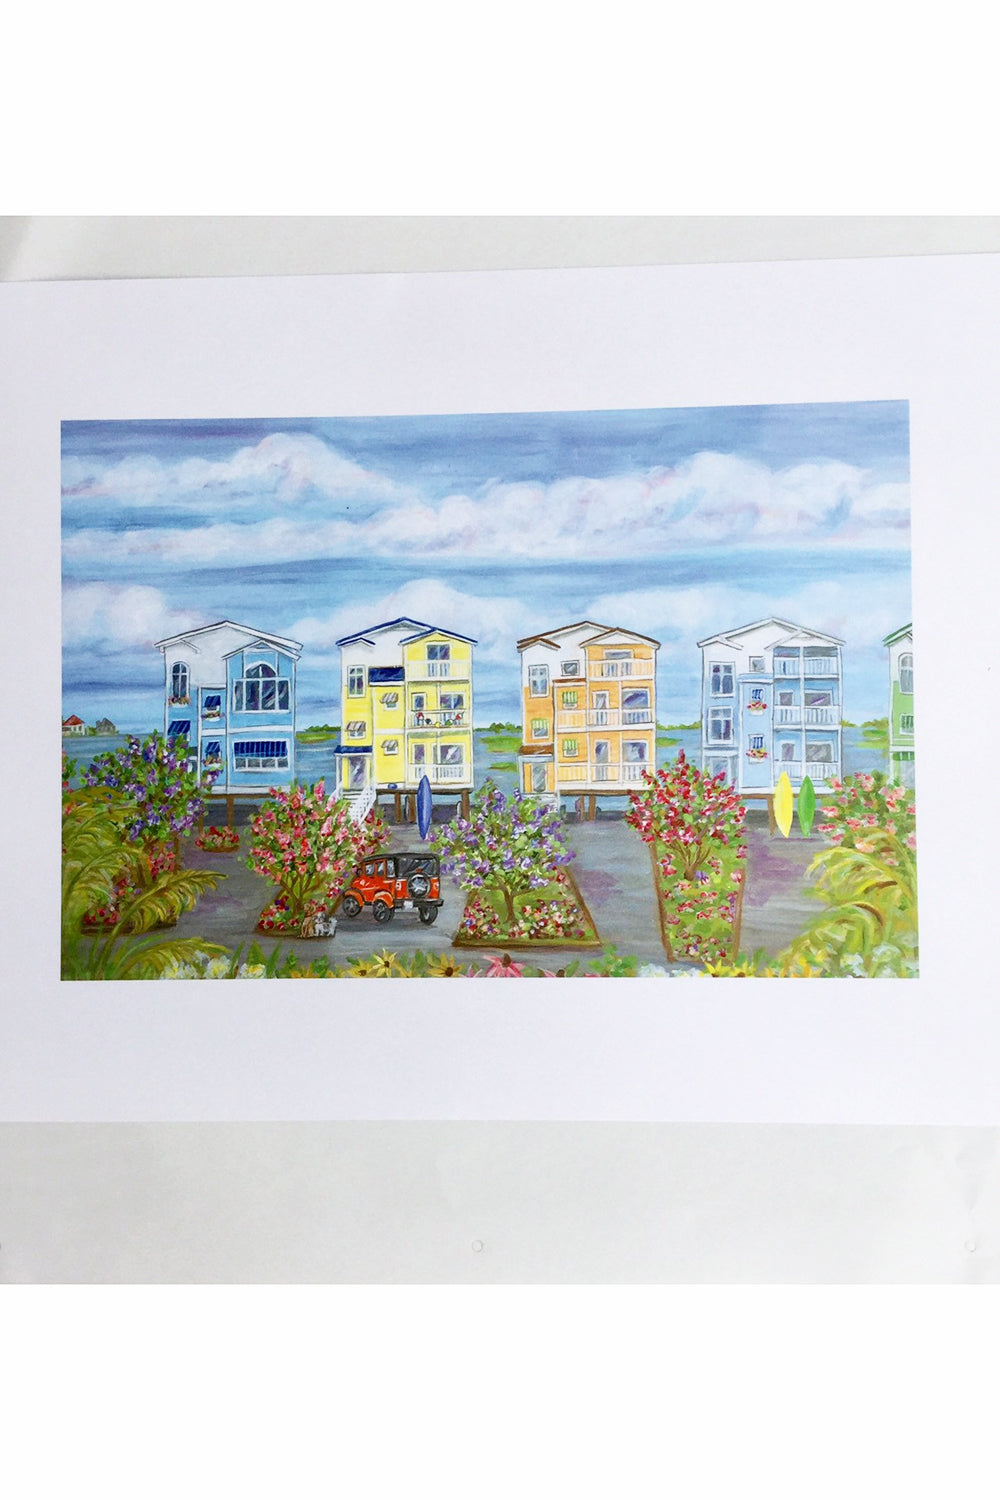 Unframed Collage - Fenwick Colorful Houses